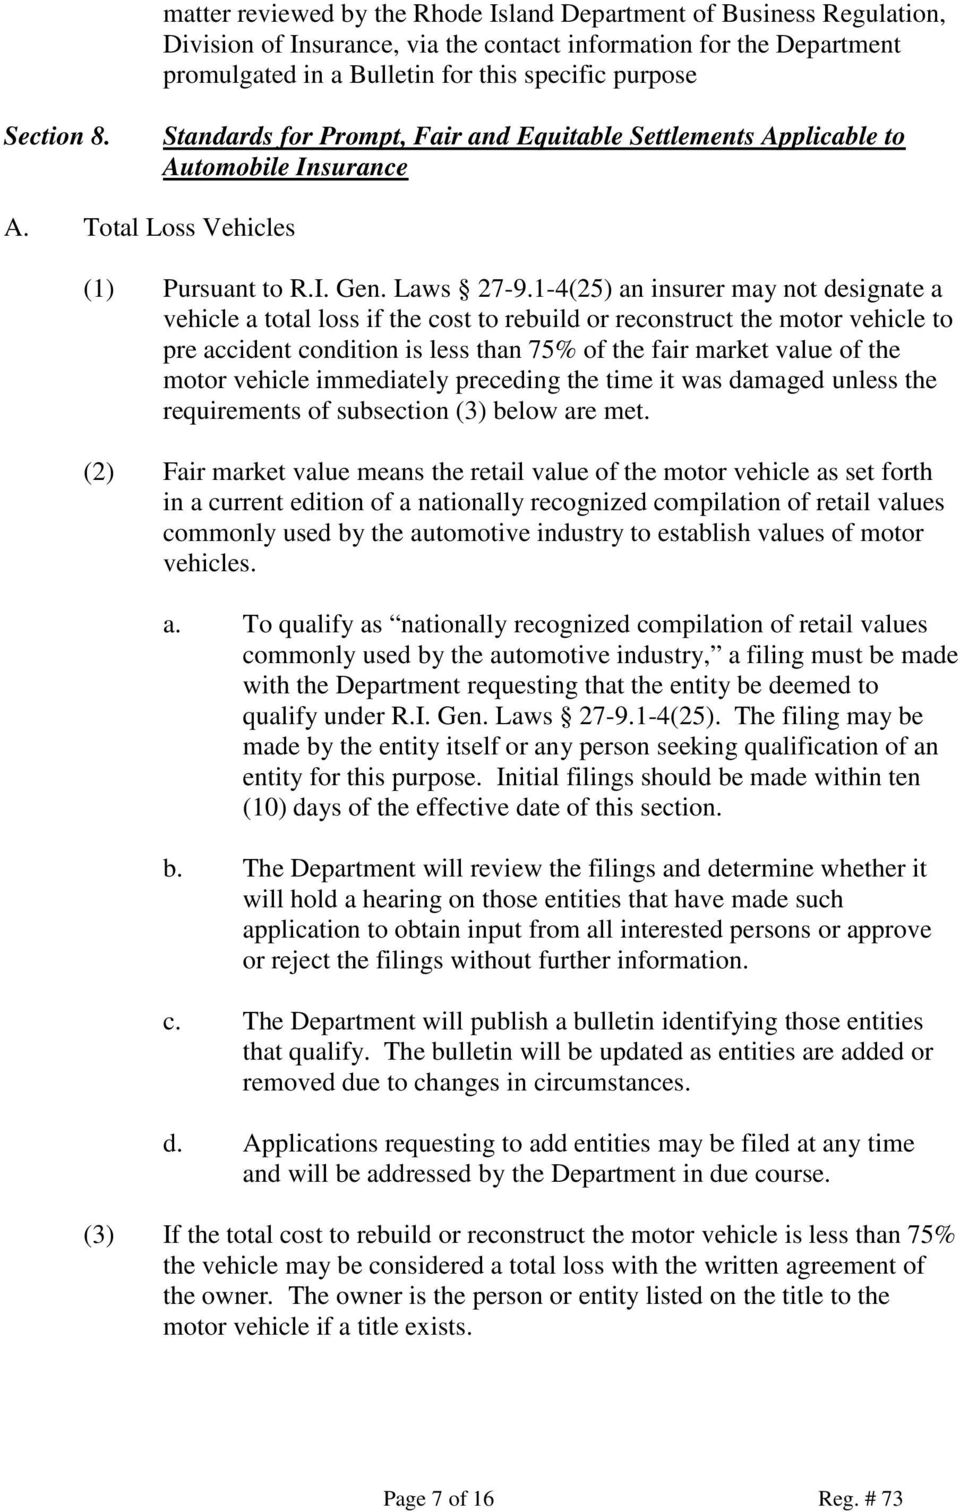 1-4(25) an insurer may not designate a vehicle a total loss if the cost to rebuild or reconstruct the motor vehicle to pre accident condition is less than 75% of the fair market value of the motor